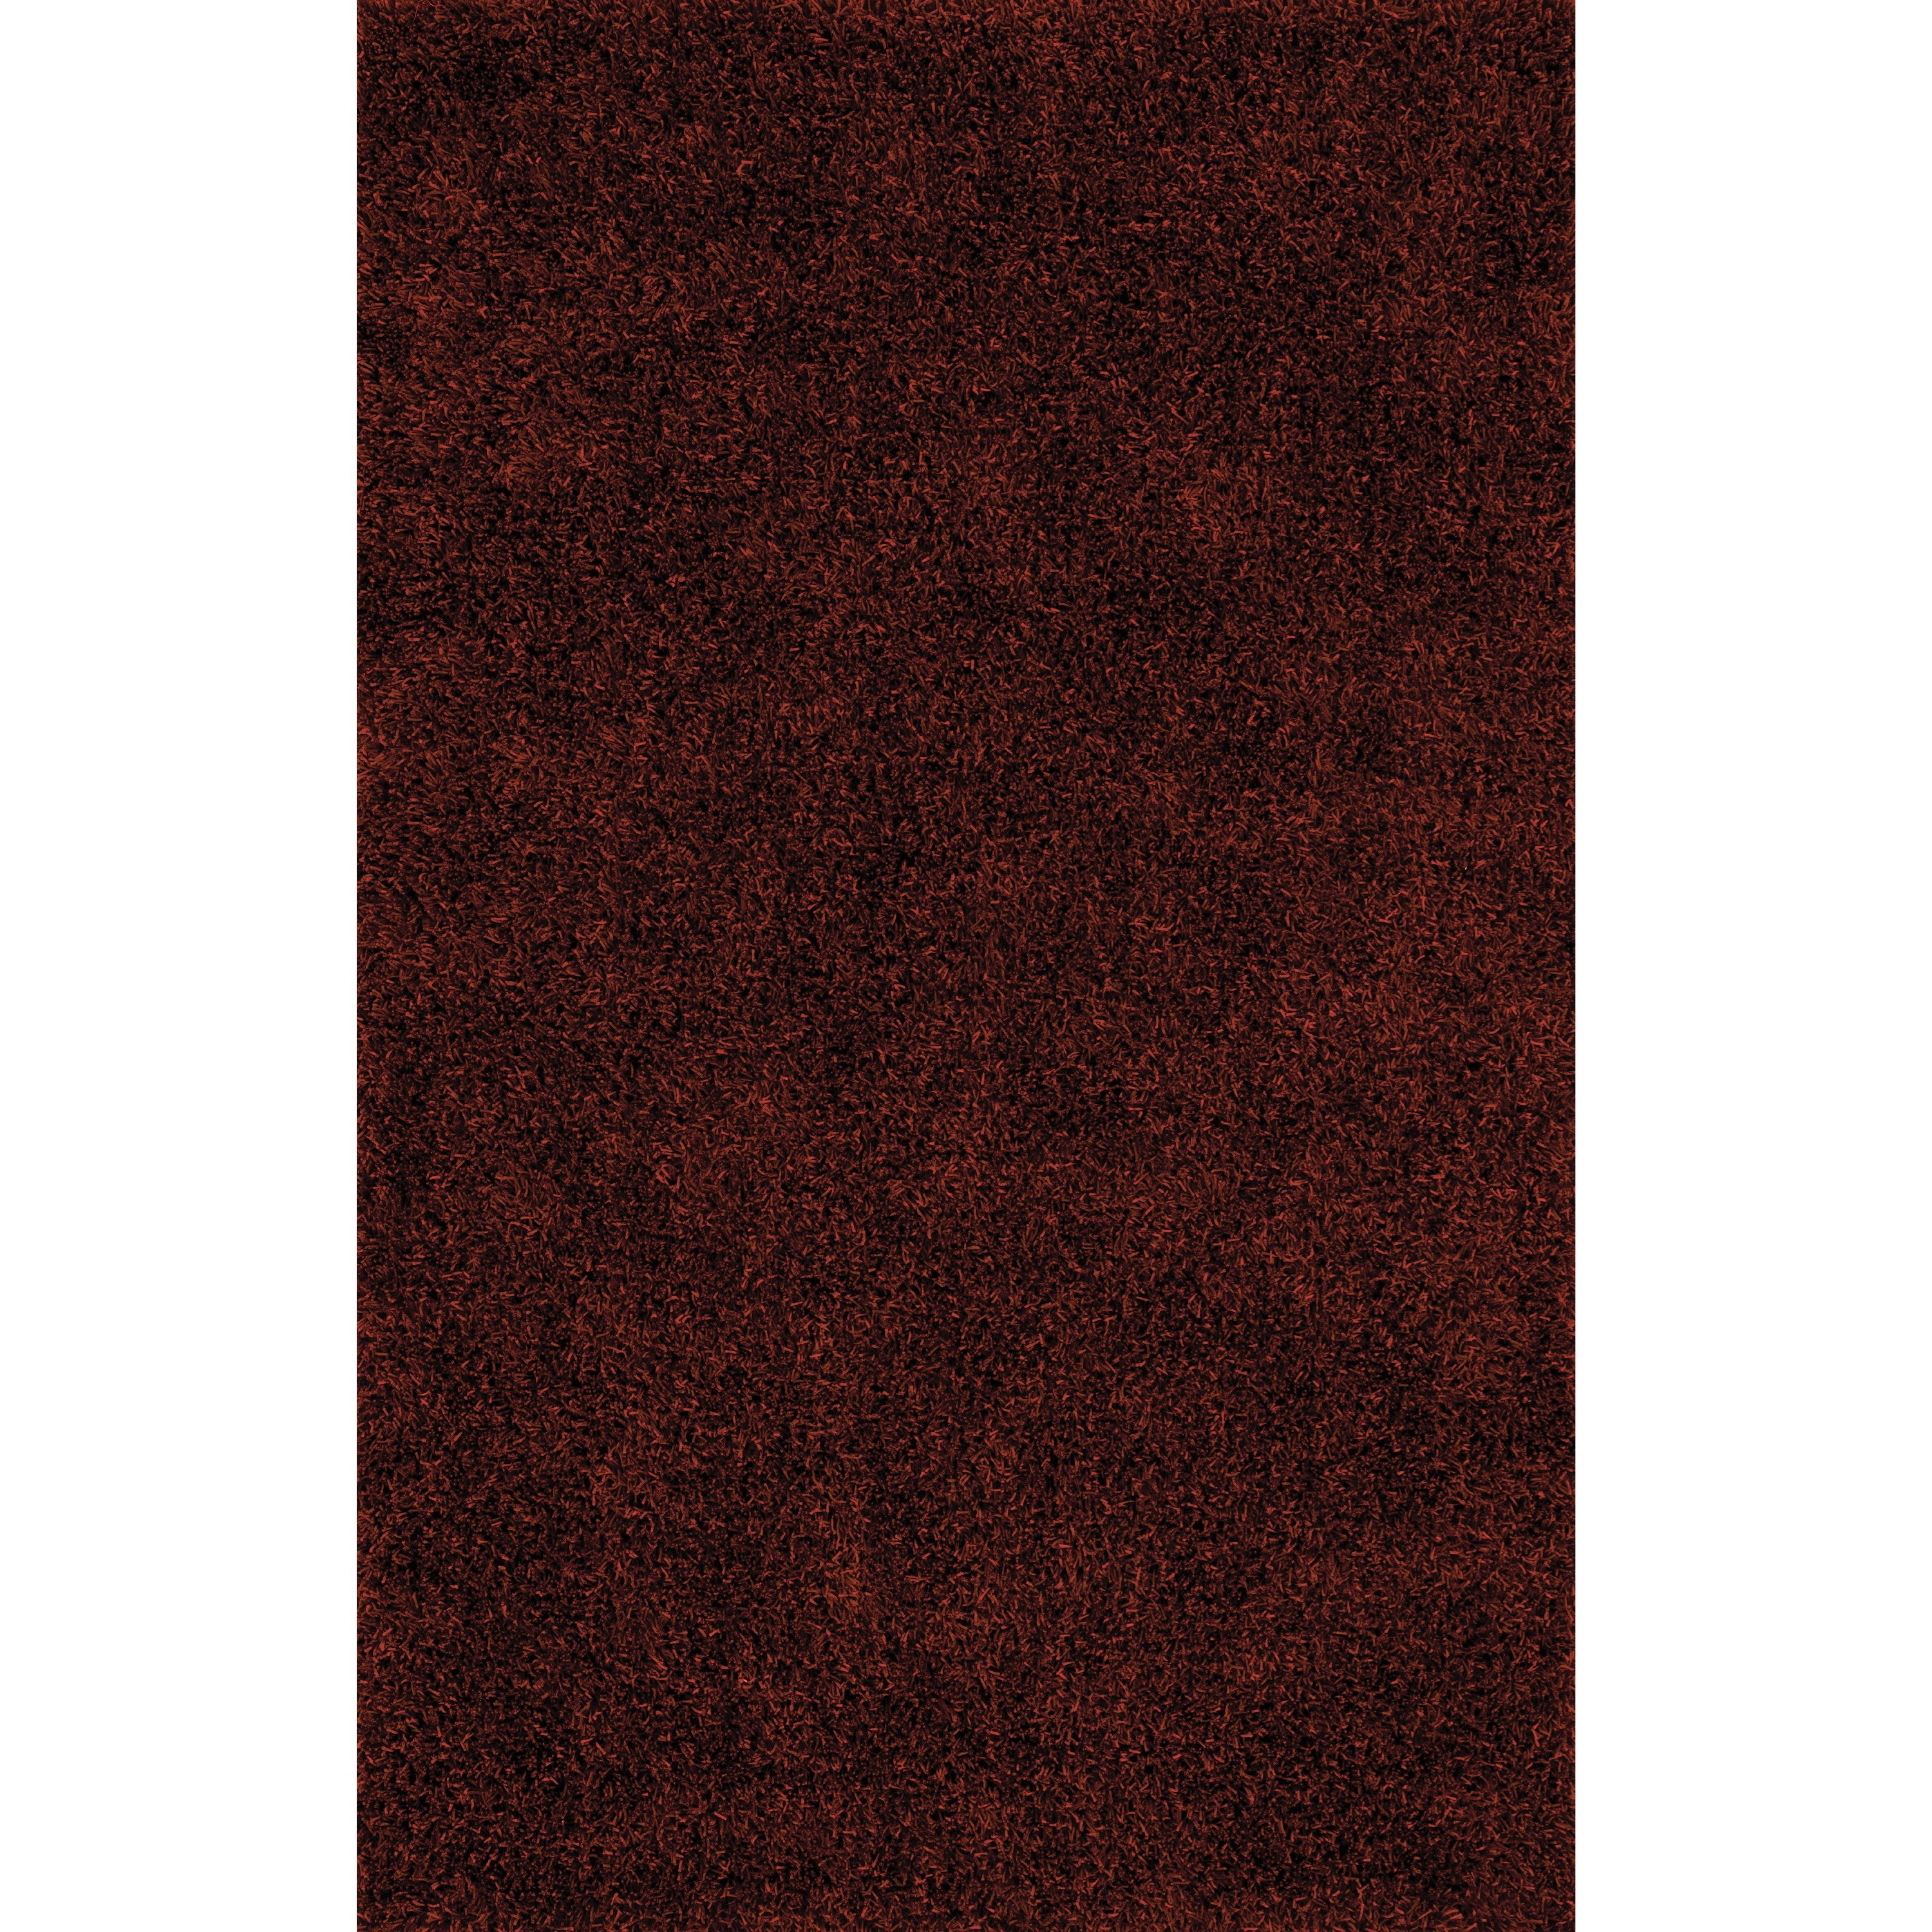 Dalyn Illusions Paprika 8'X10' Rug - Item Number: IL69PA8X10